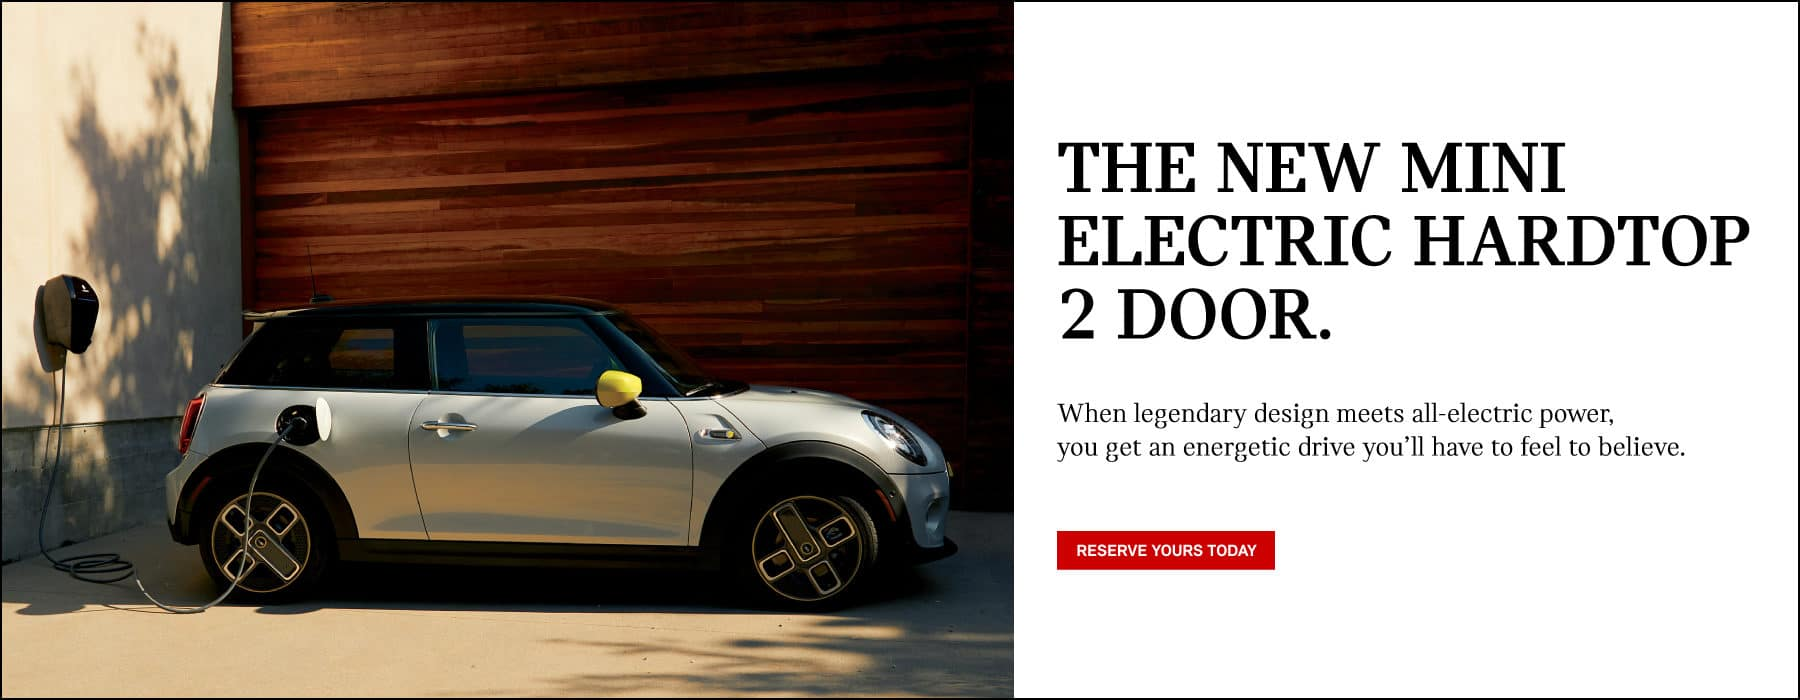 THE NEW MINI ELECTRIC HARDTOP 2 DOOR. When legendary design meets all-electric power, you get an energetic drive you'll have to feel to believe. Click to register yours today.